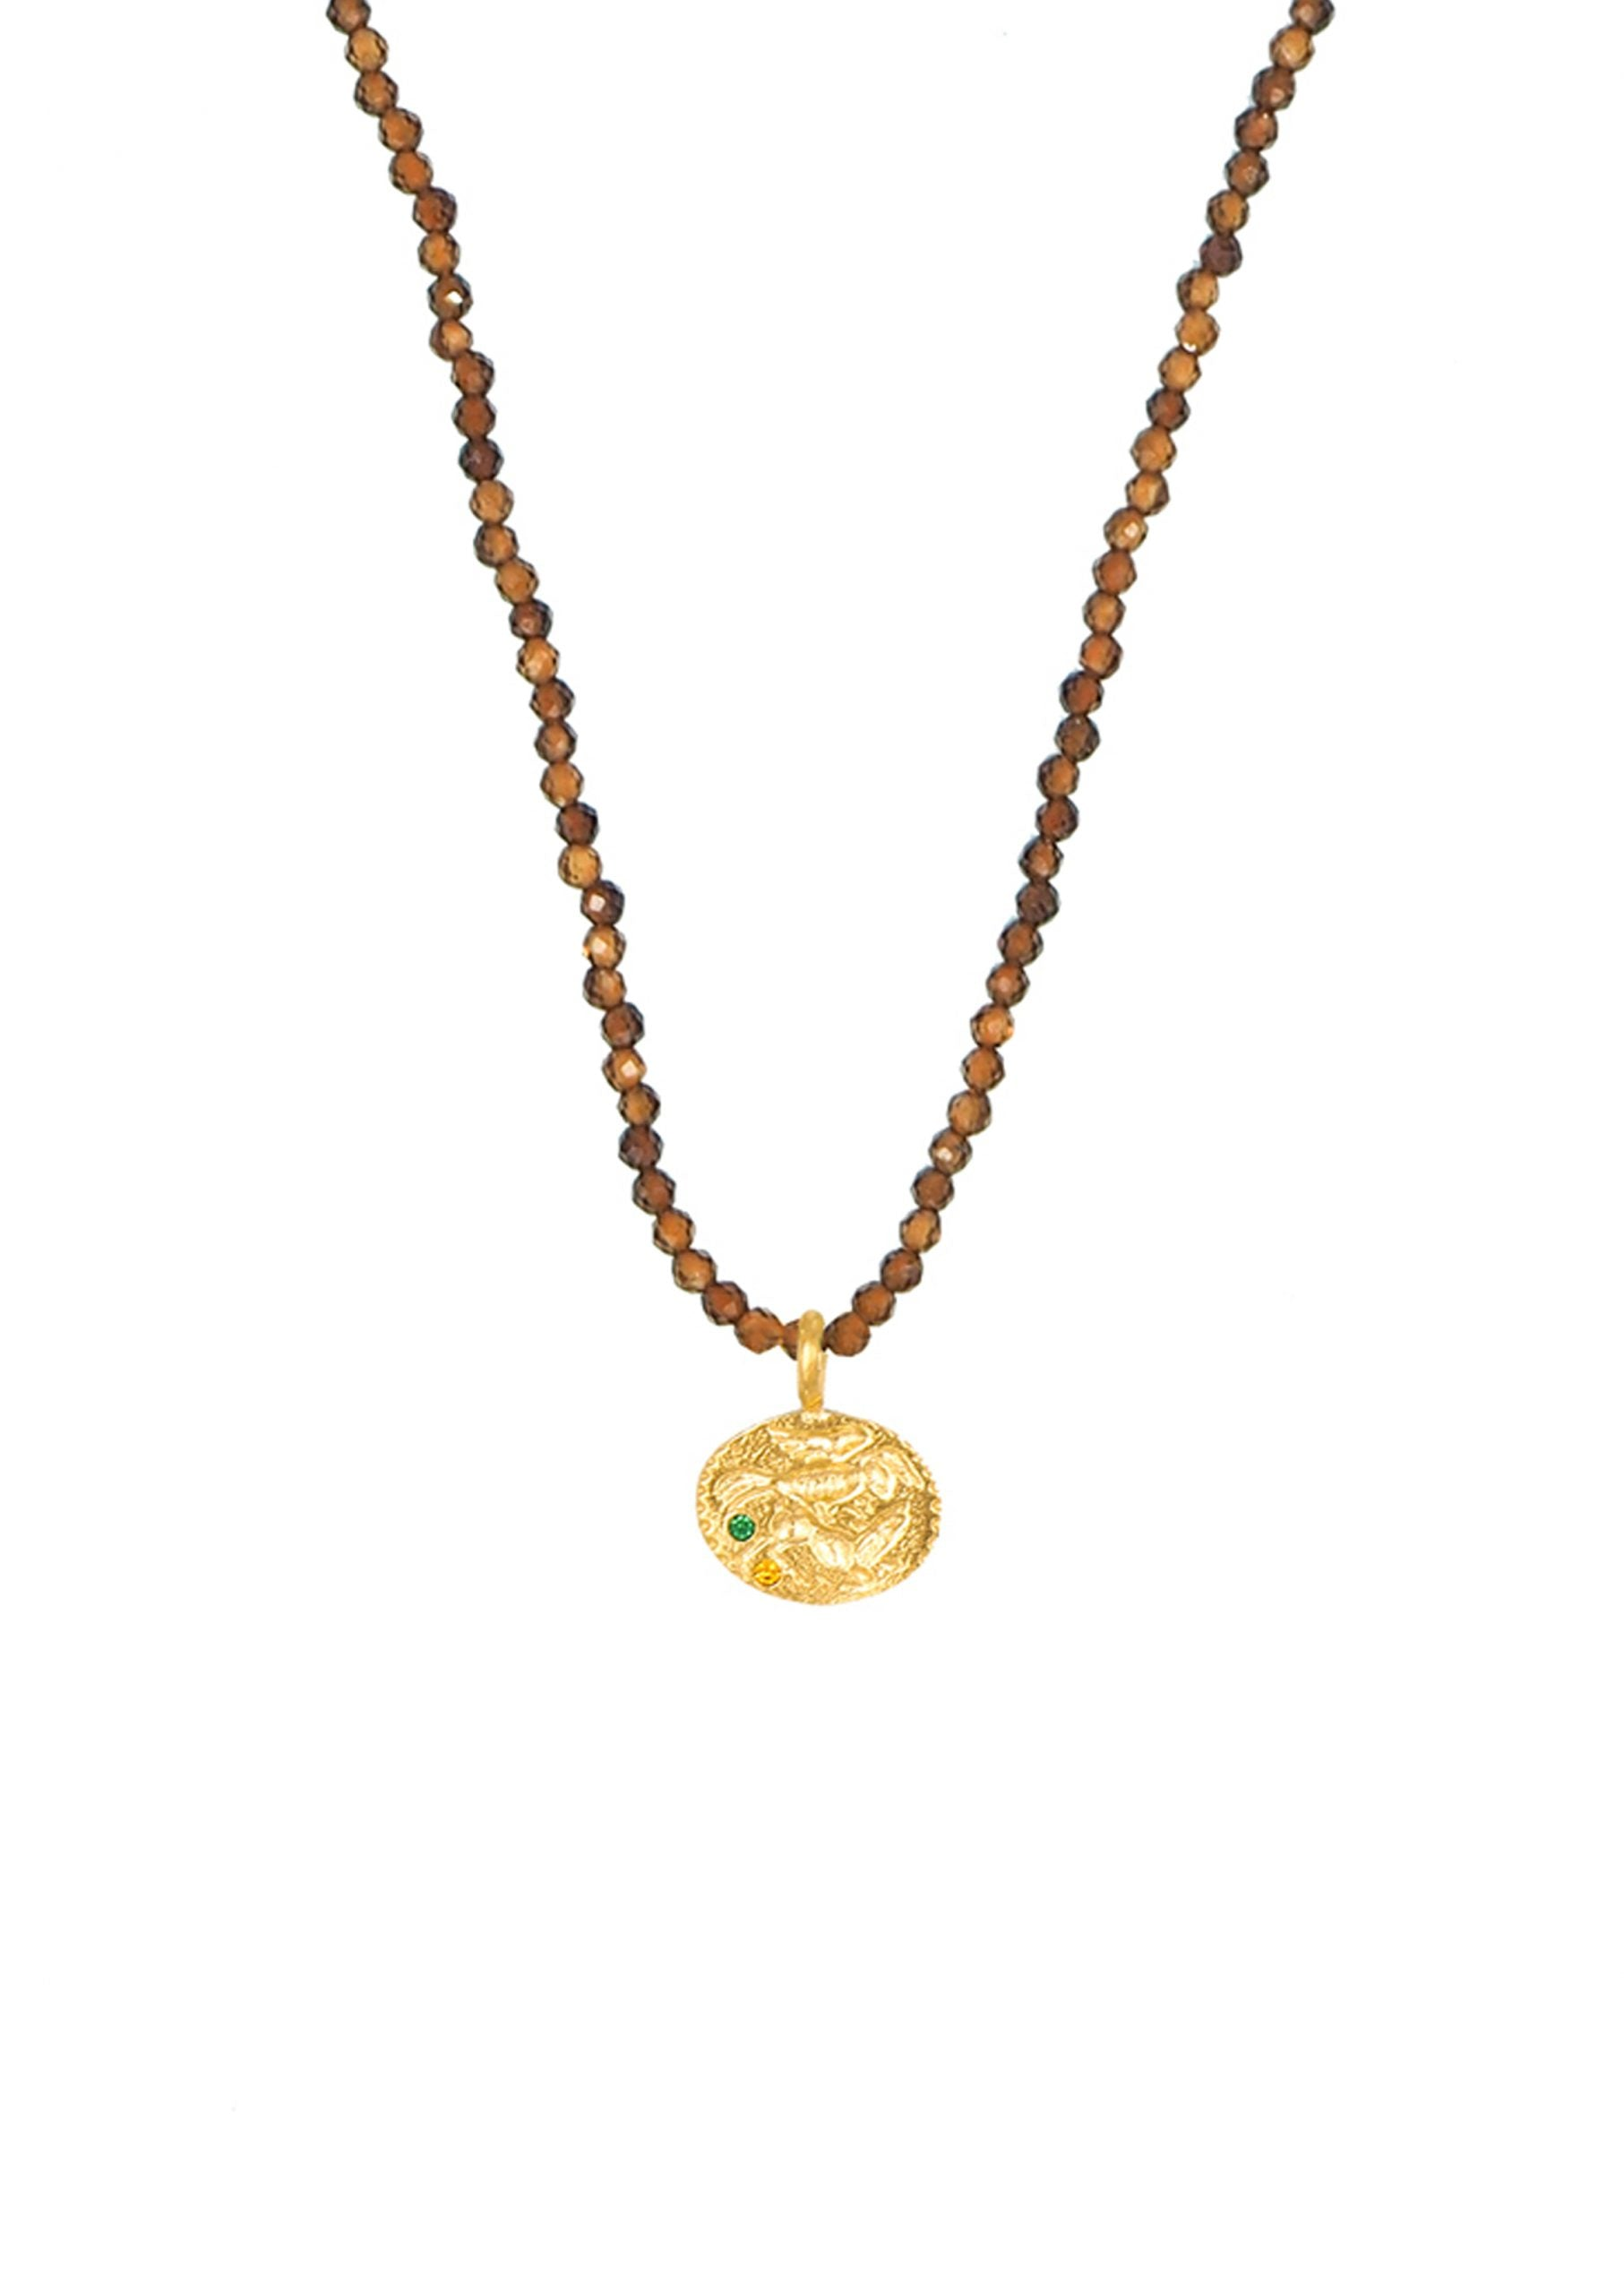 HERMINA Sealstone Animal Moca Necklace